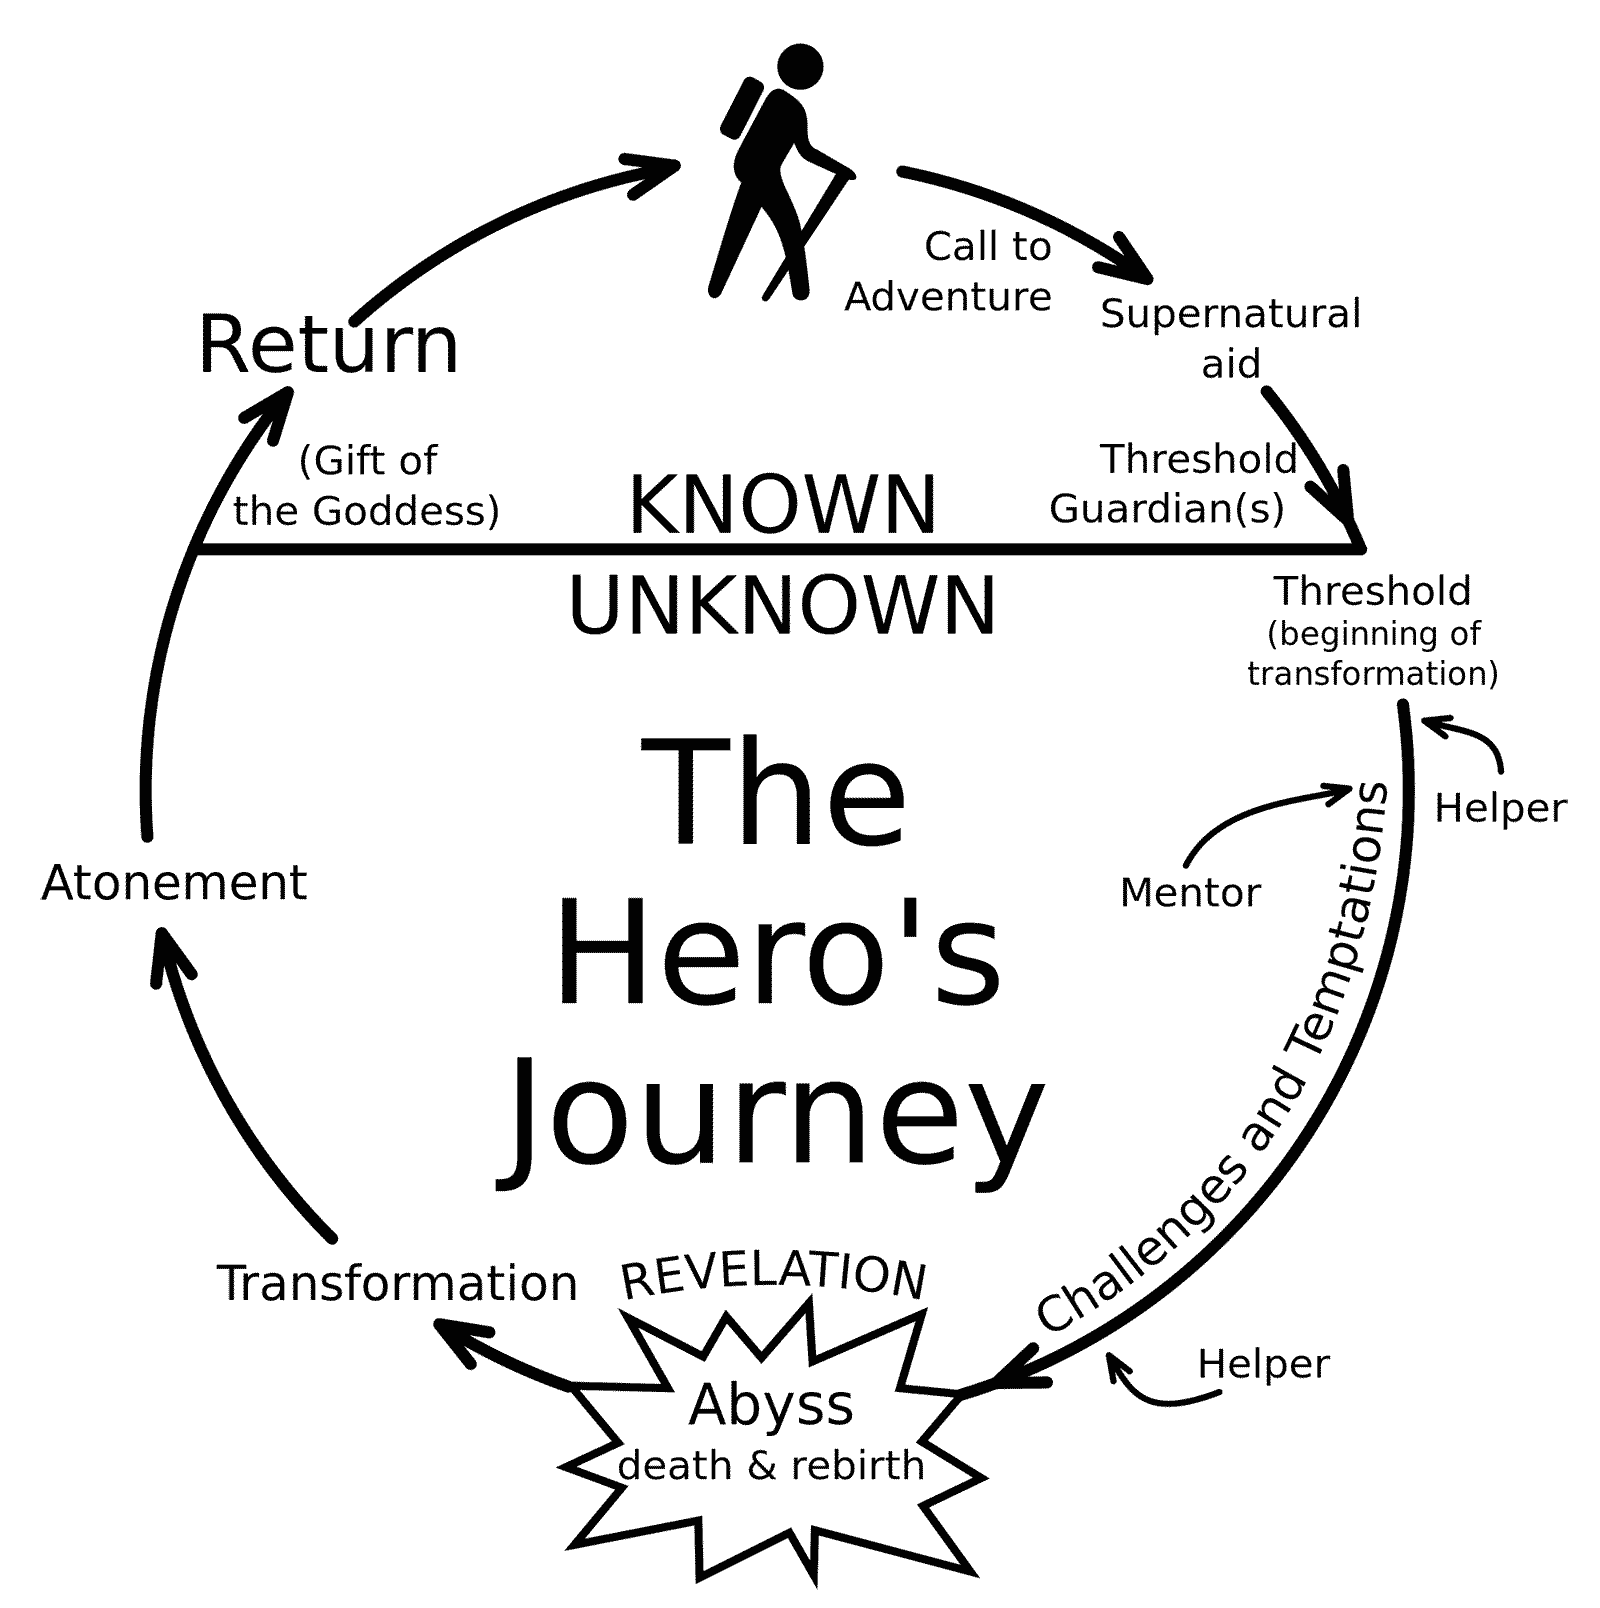 Hero's Journey illustration